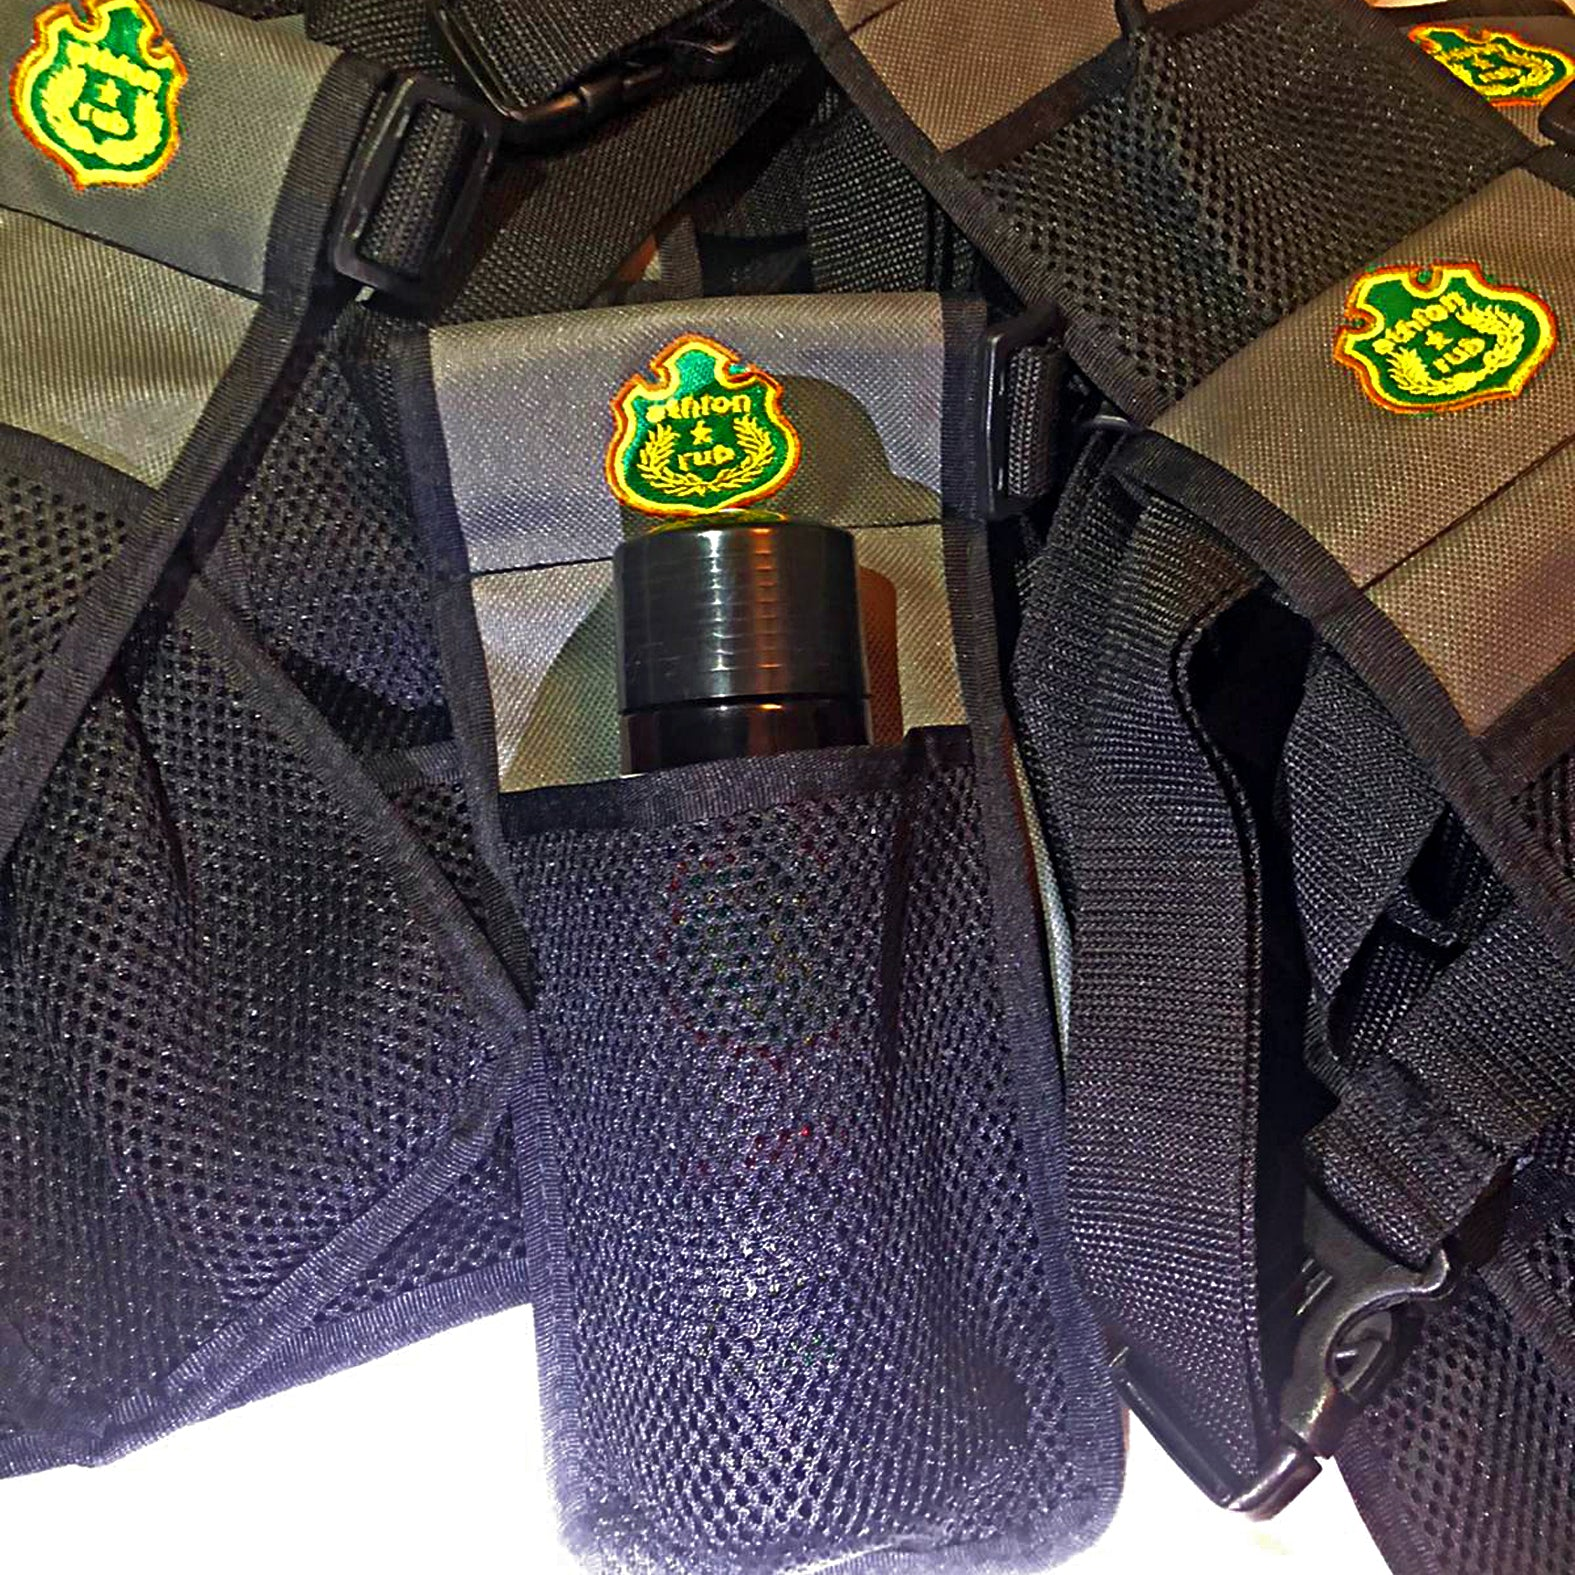 Pro Bottle - Holster - Athlon Rub